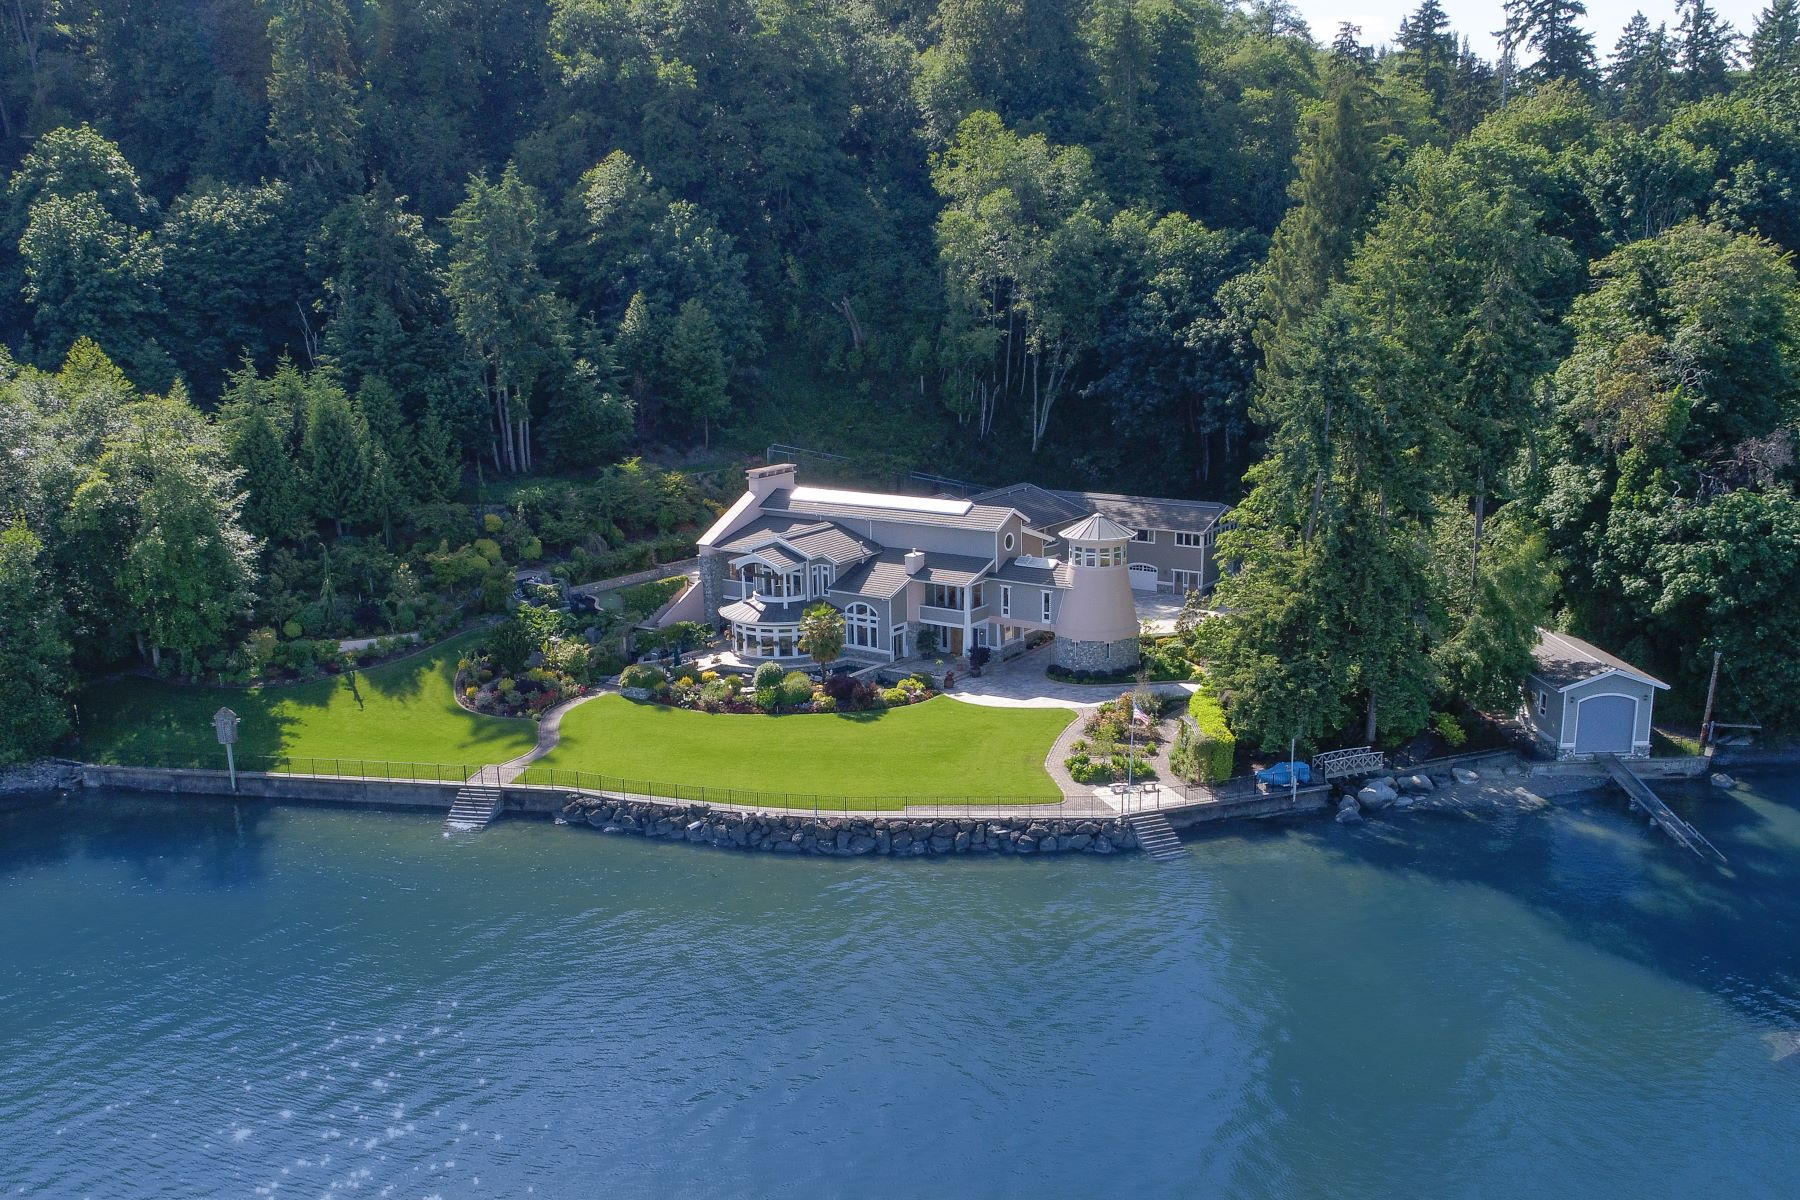 Single Family Home for Sale at Private Palatial Waterfront 8415 SW Soper Road Vashon, Washington, 98070 United States